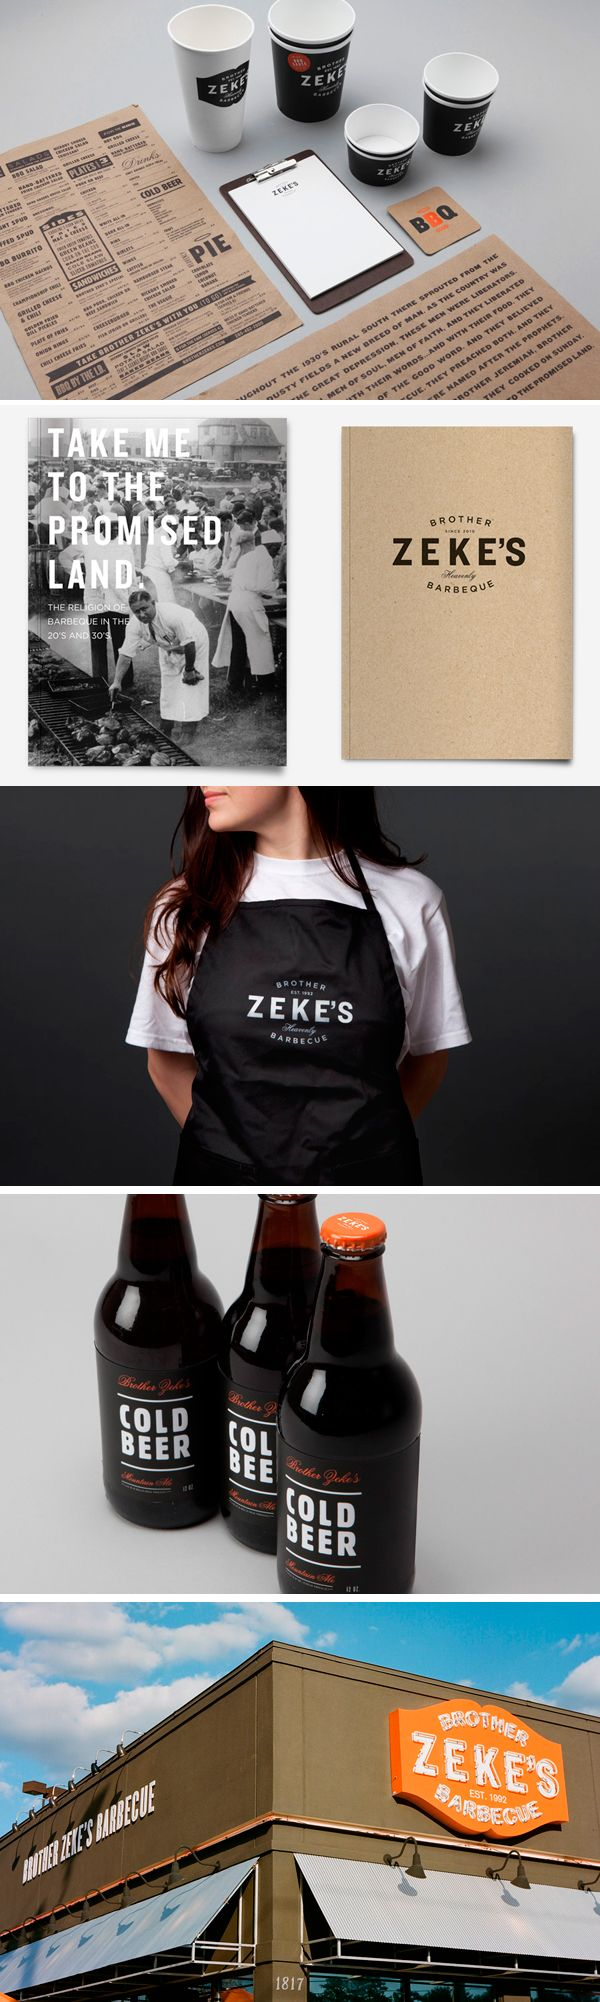 Lunchtime at zeke's bbq #packaging #branding PD